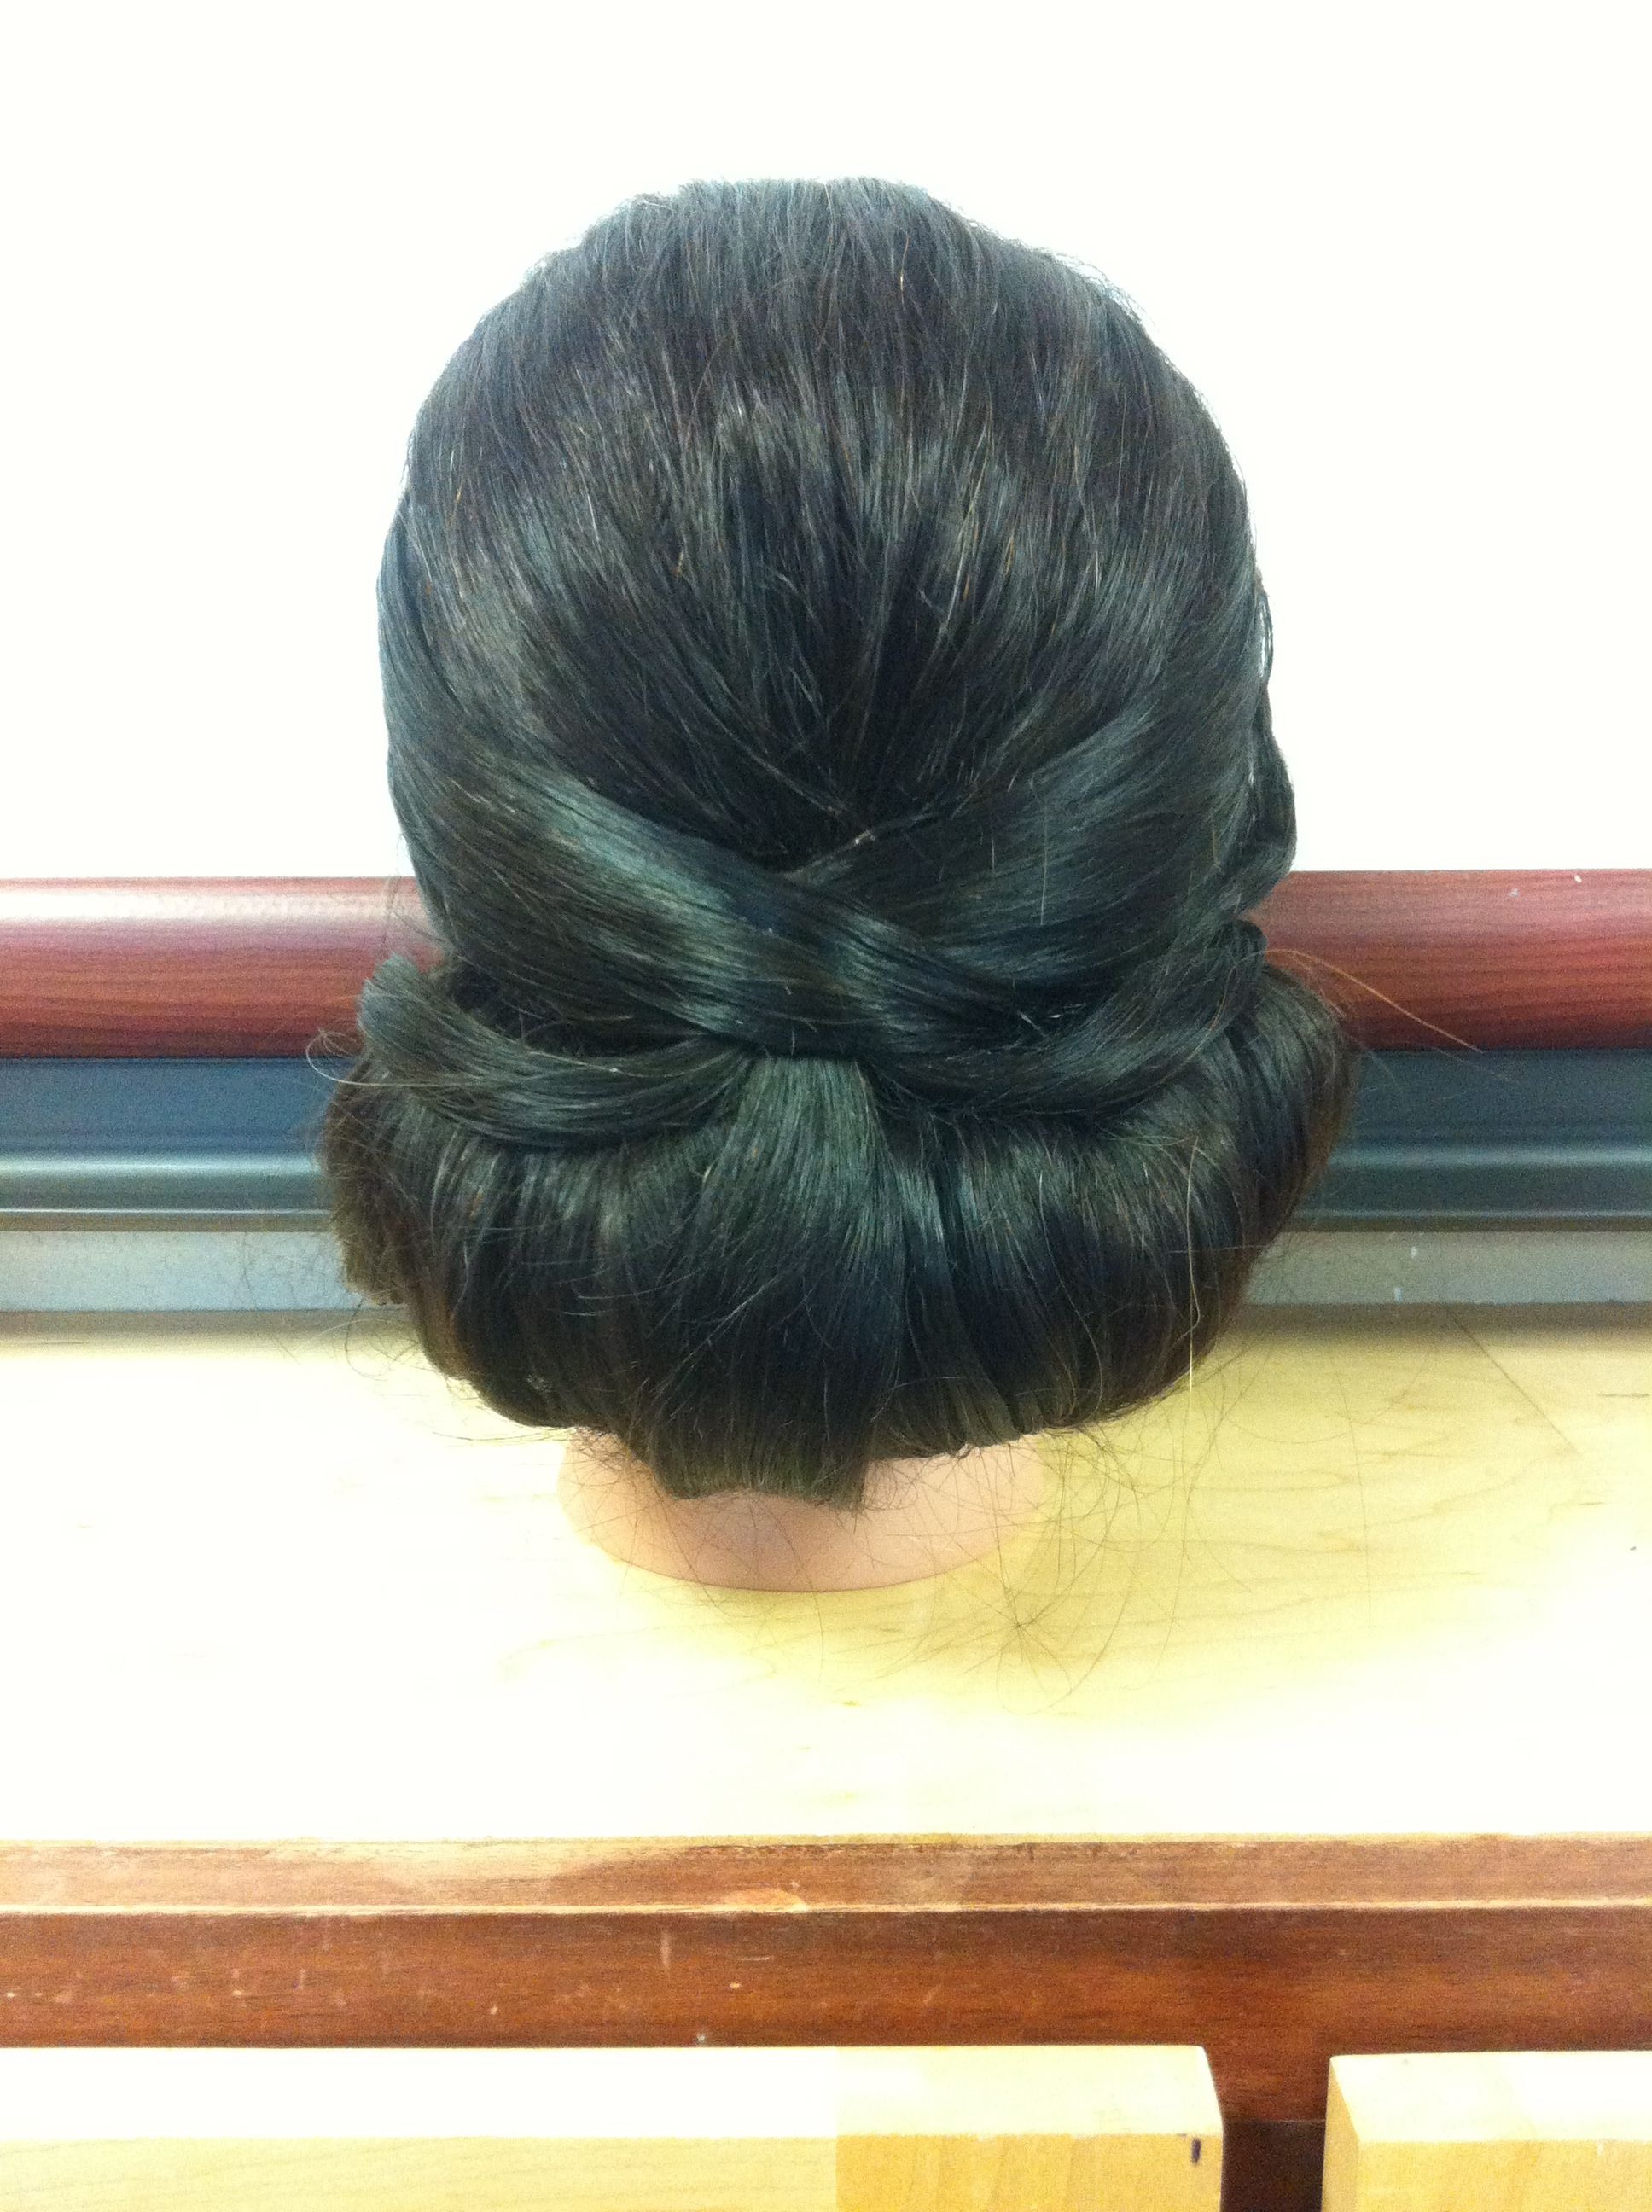 Vintage updos victory rolls pinup hair styles simplicity